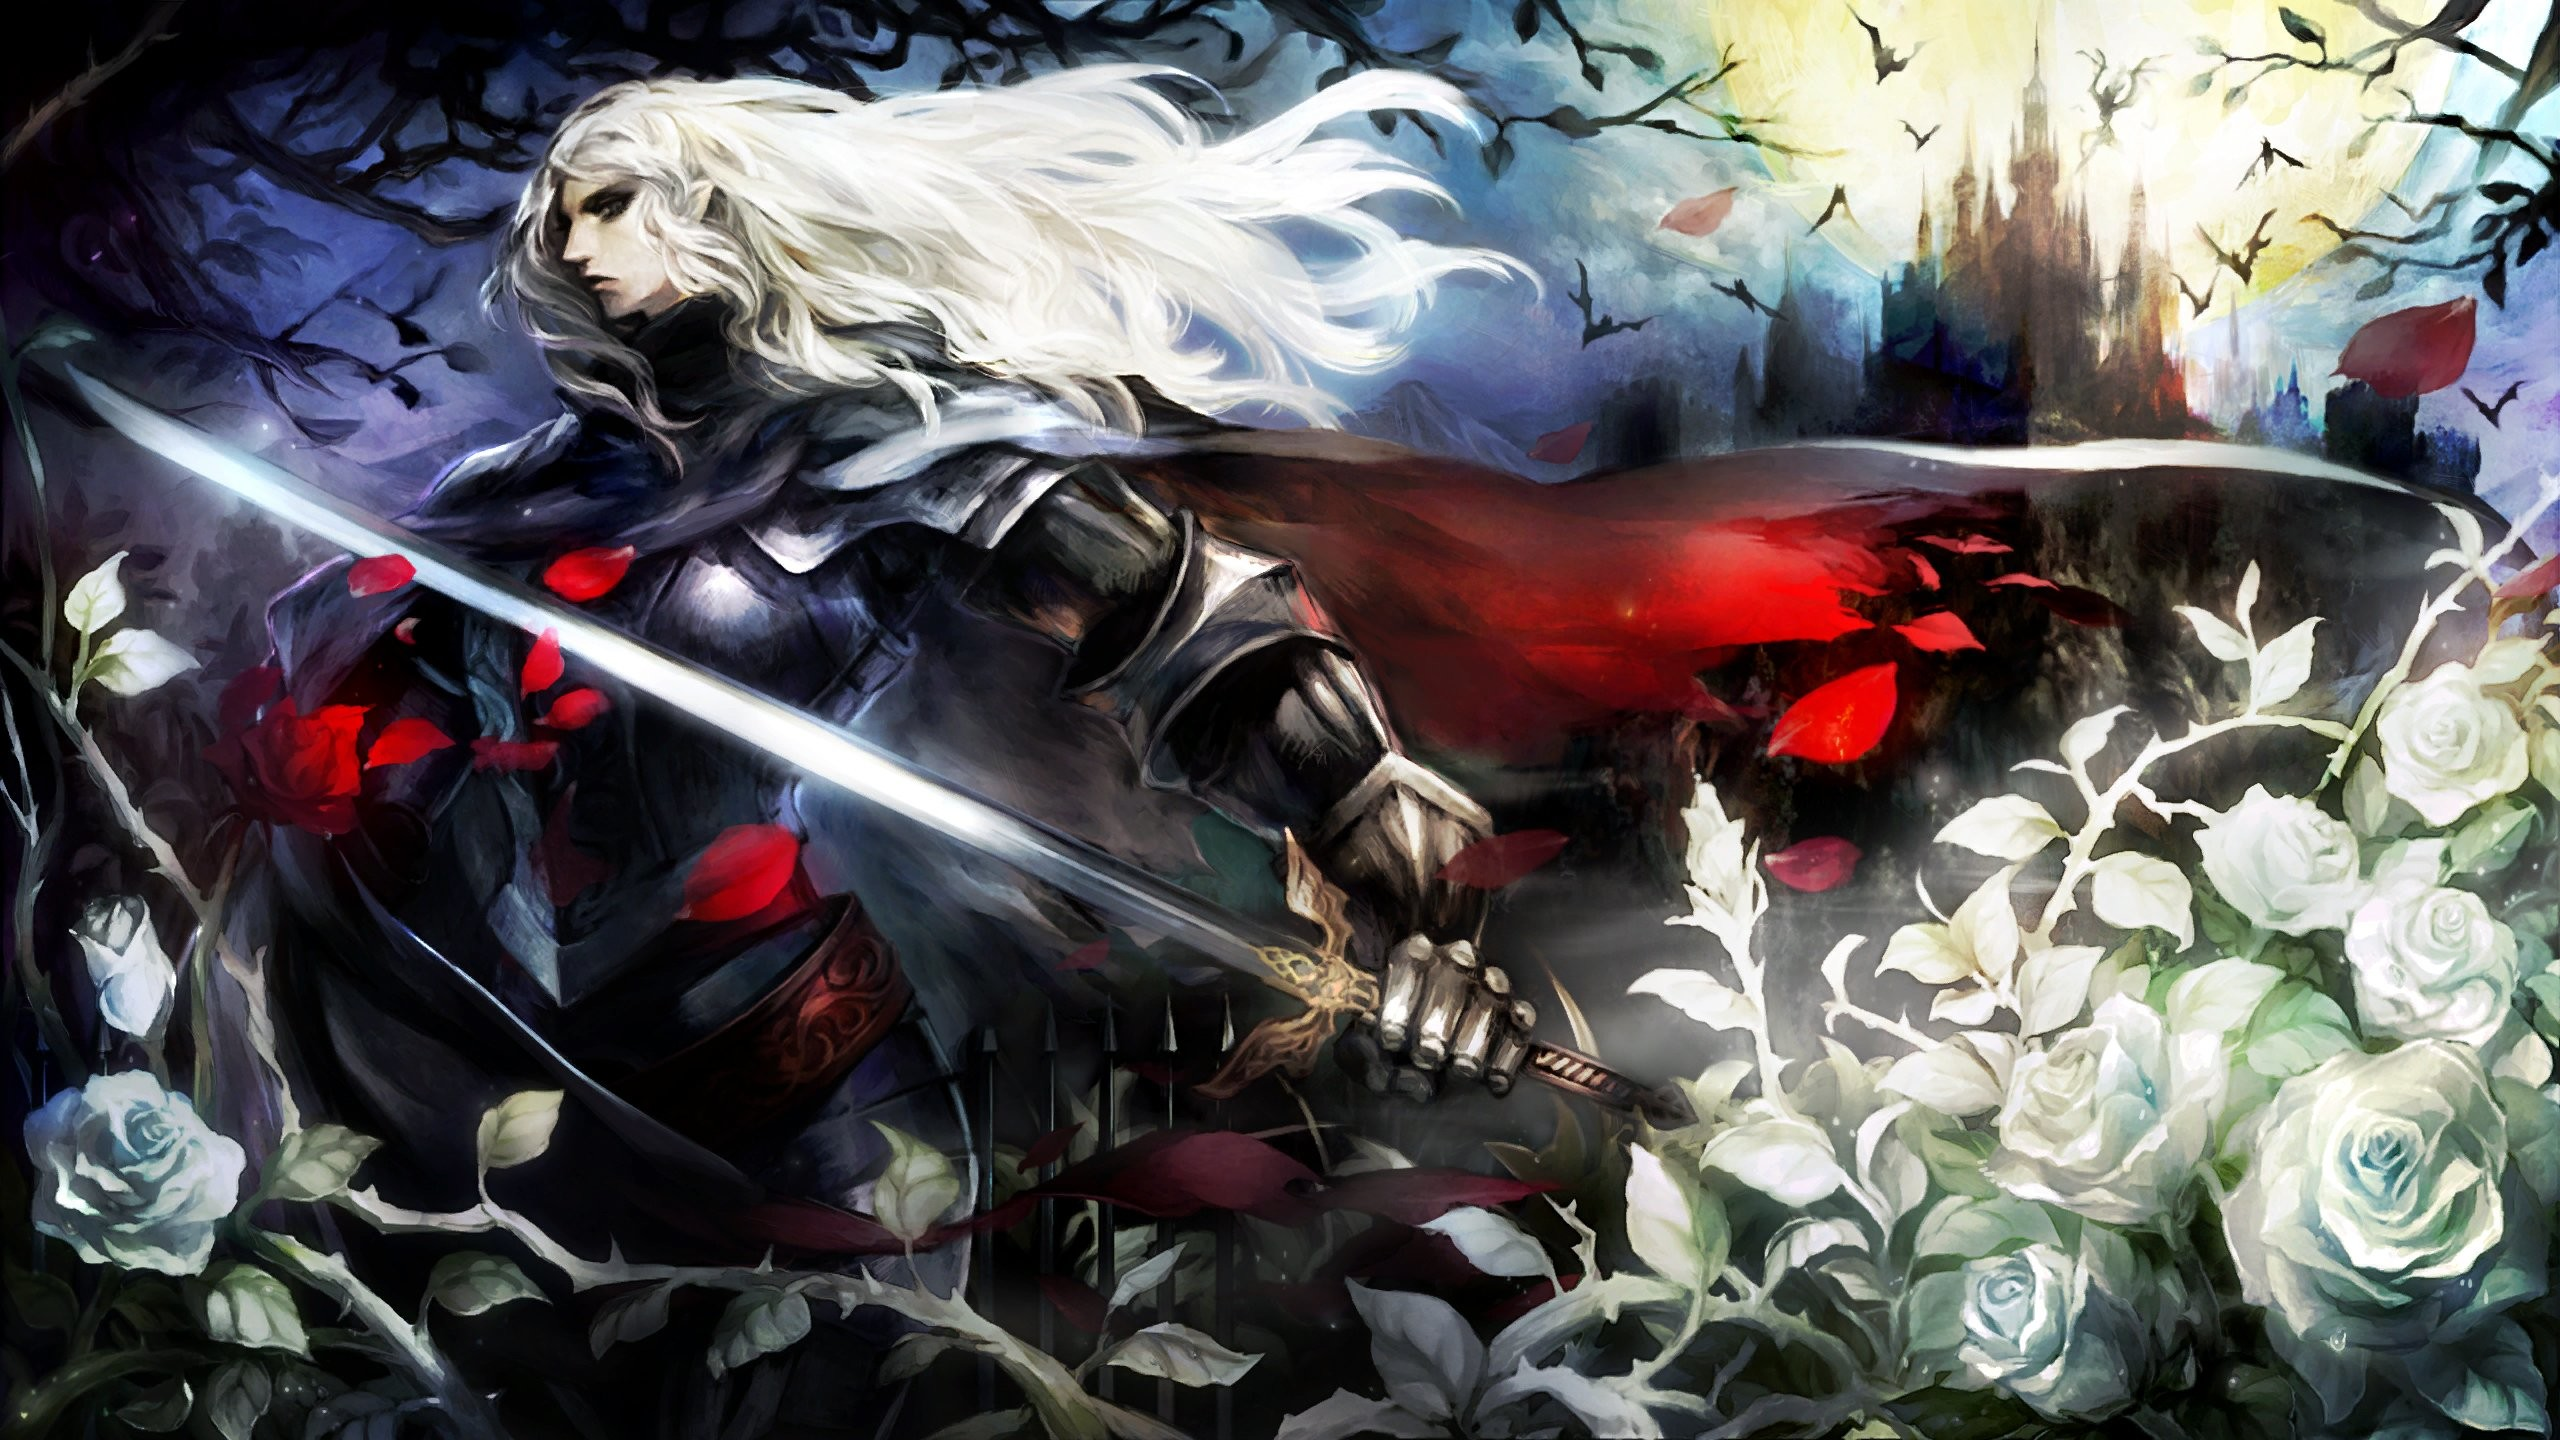 Res: 2560x1440, DRAGONS-CROWN anime action rpg fantasy family medieval fighting .